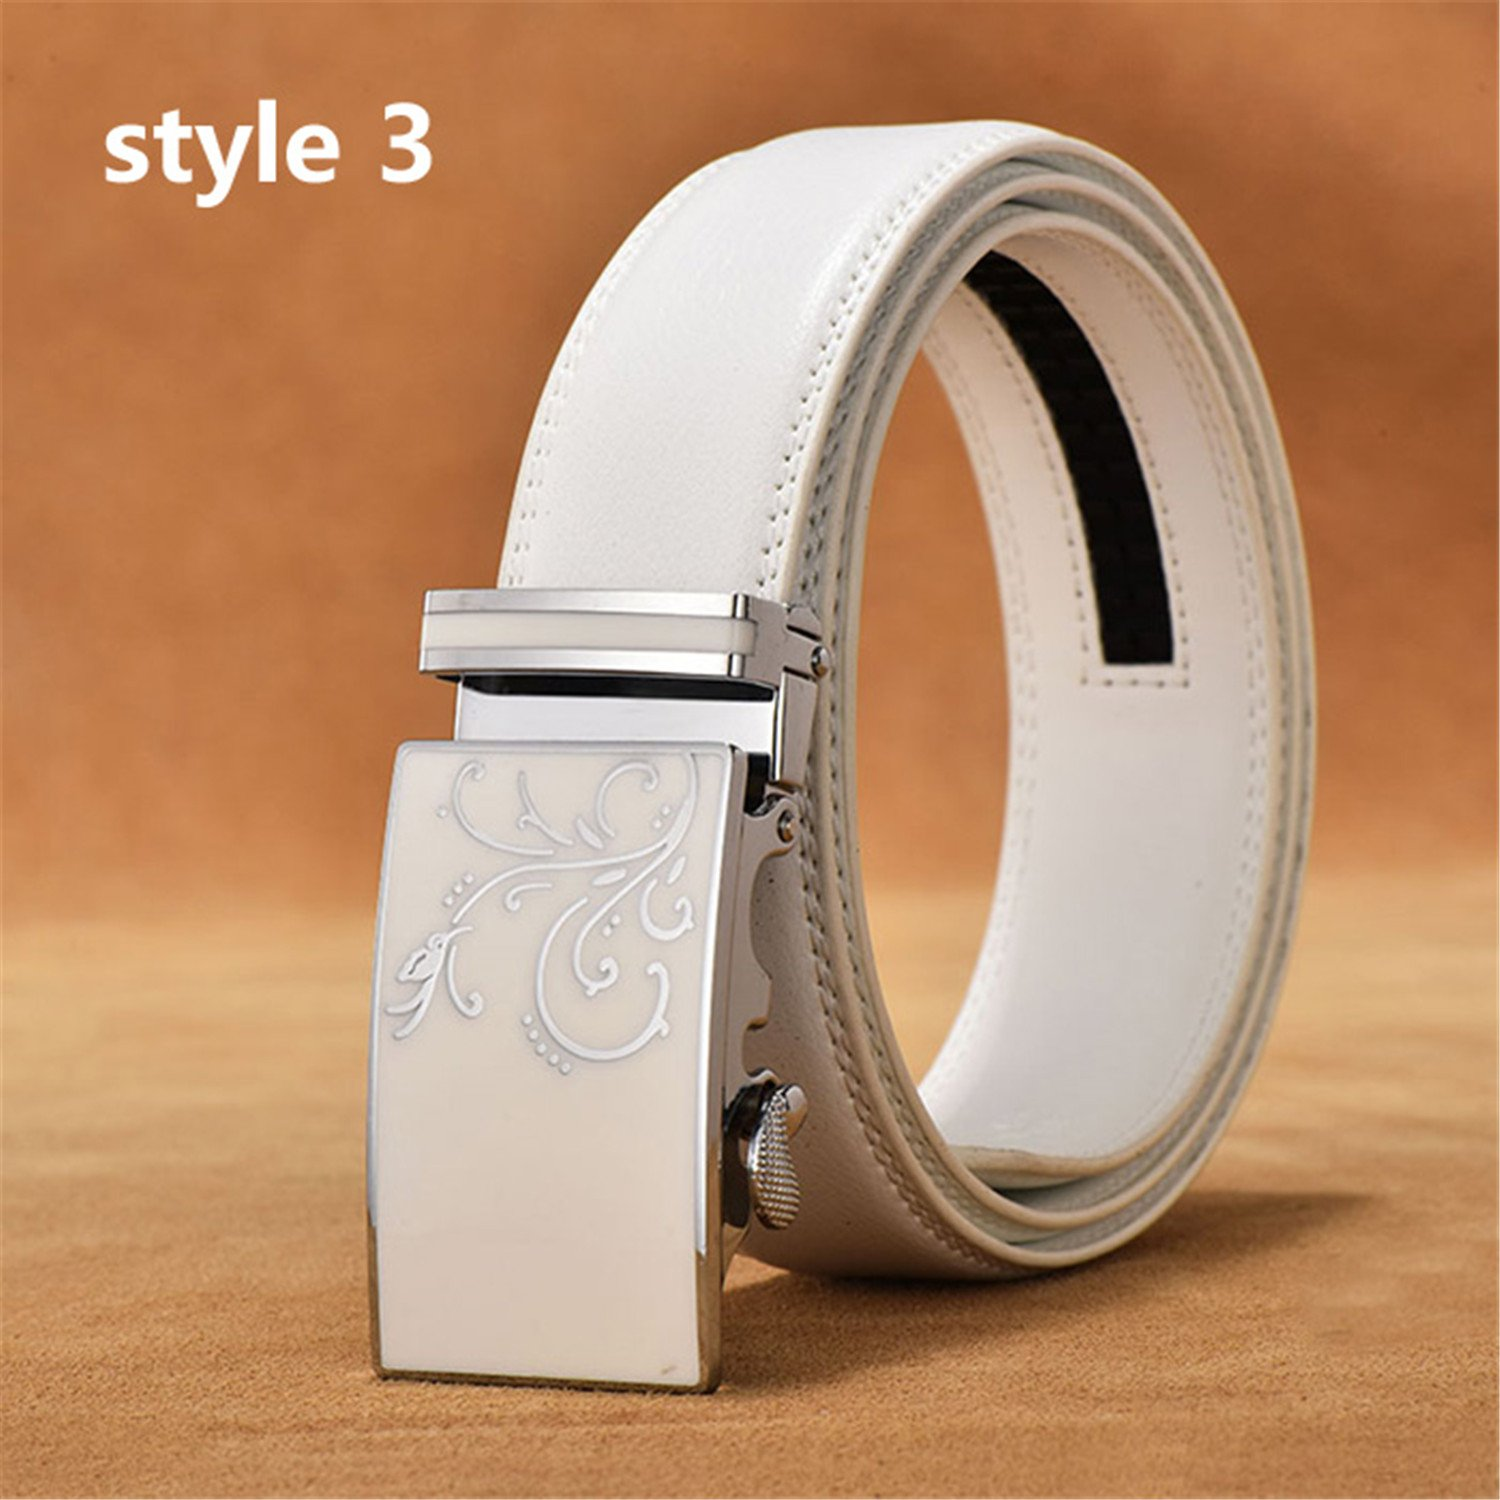 Designer Male Leather Strap White Automatic Buckle Belt Ceinture Homme style3 120cm